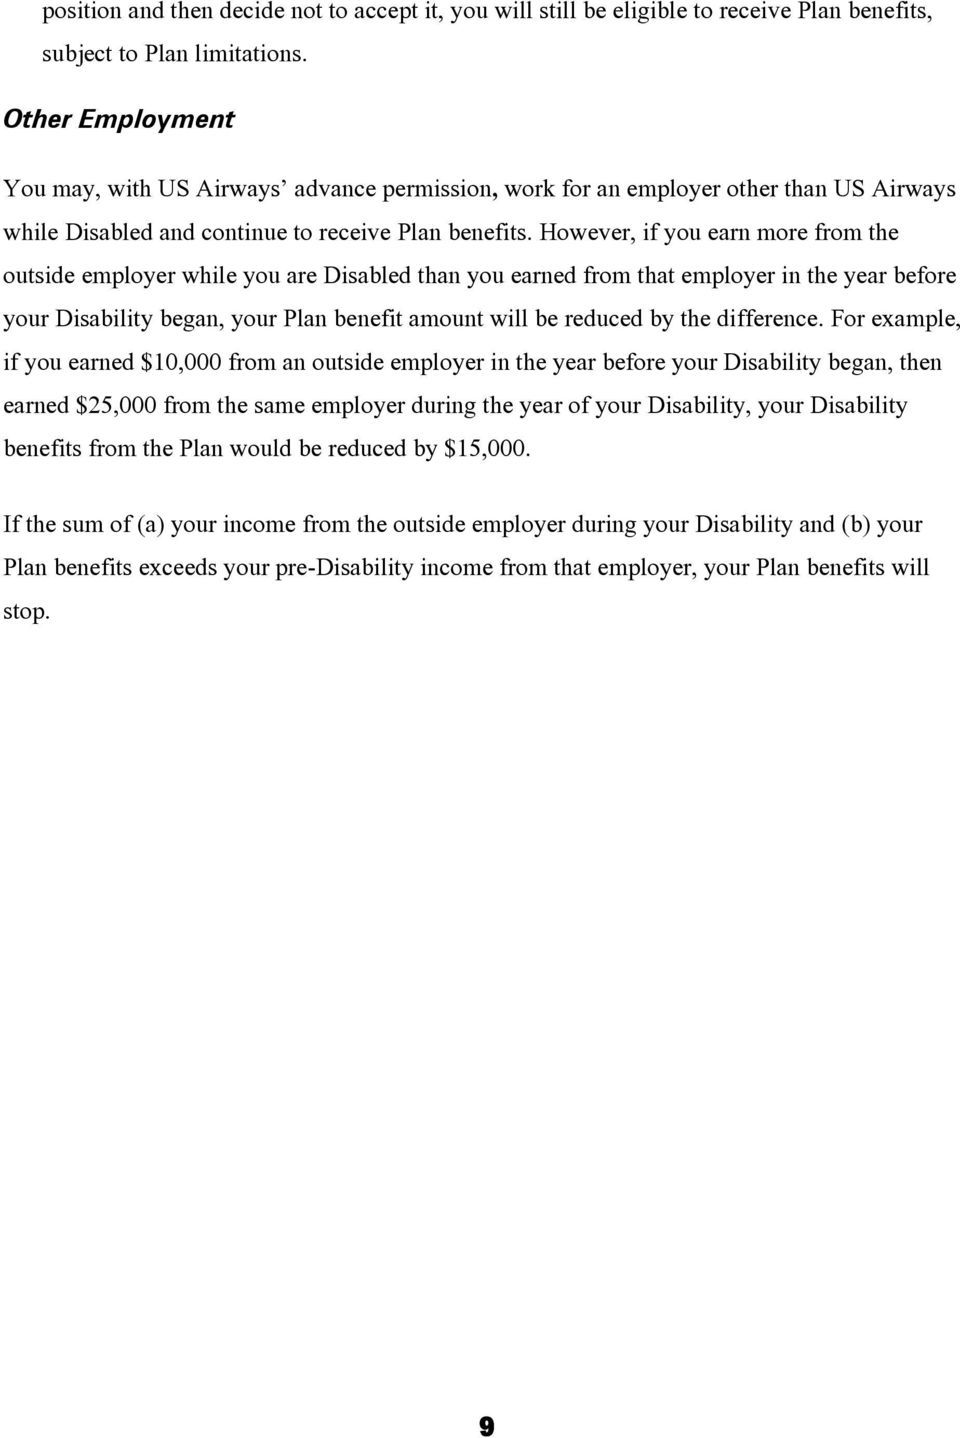 However, if you earn more from the outside employer while you are Disabled than you earned from that employer in the year before your Disability began, your Plan benefit amount will be reduced by the